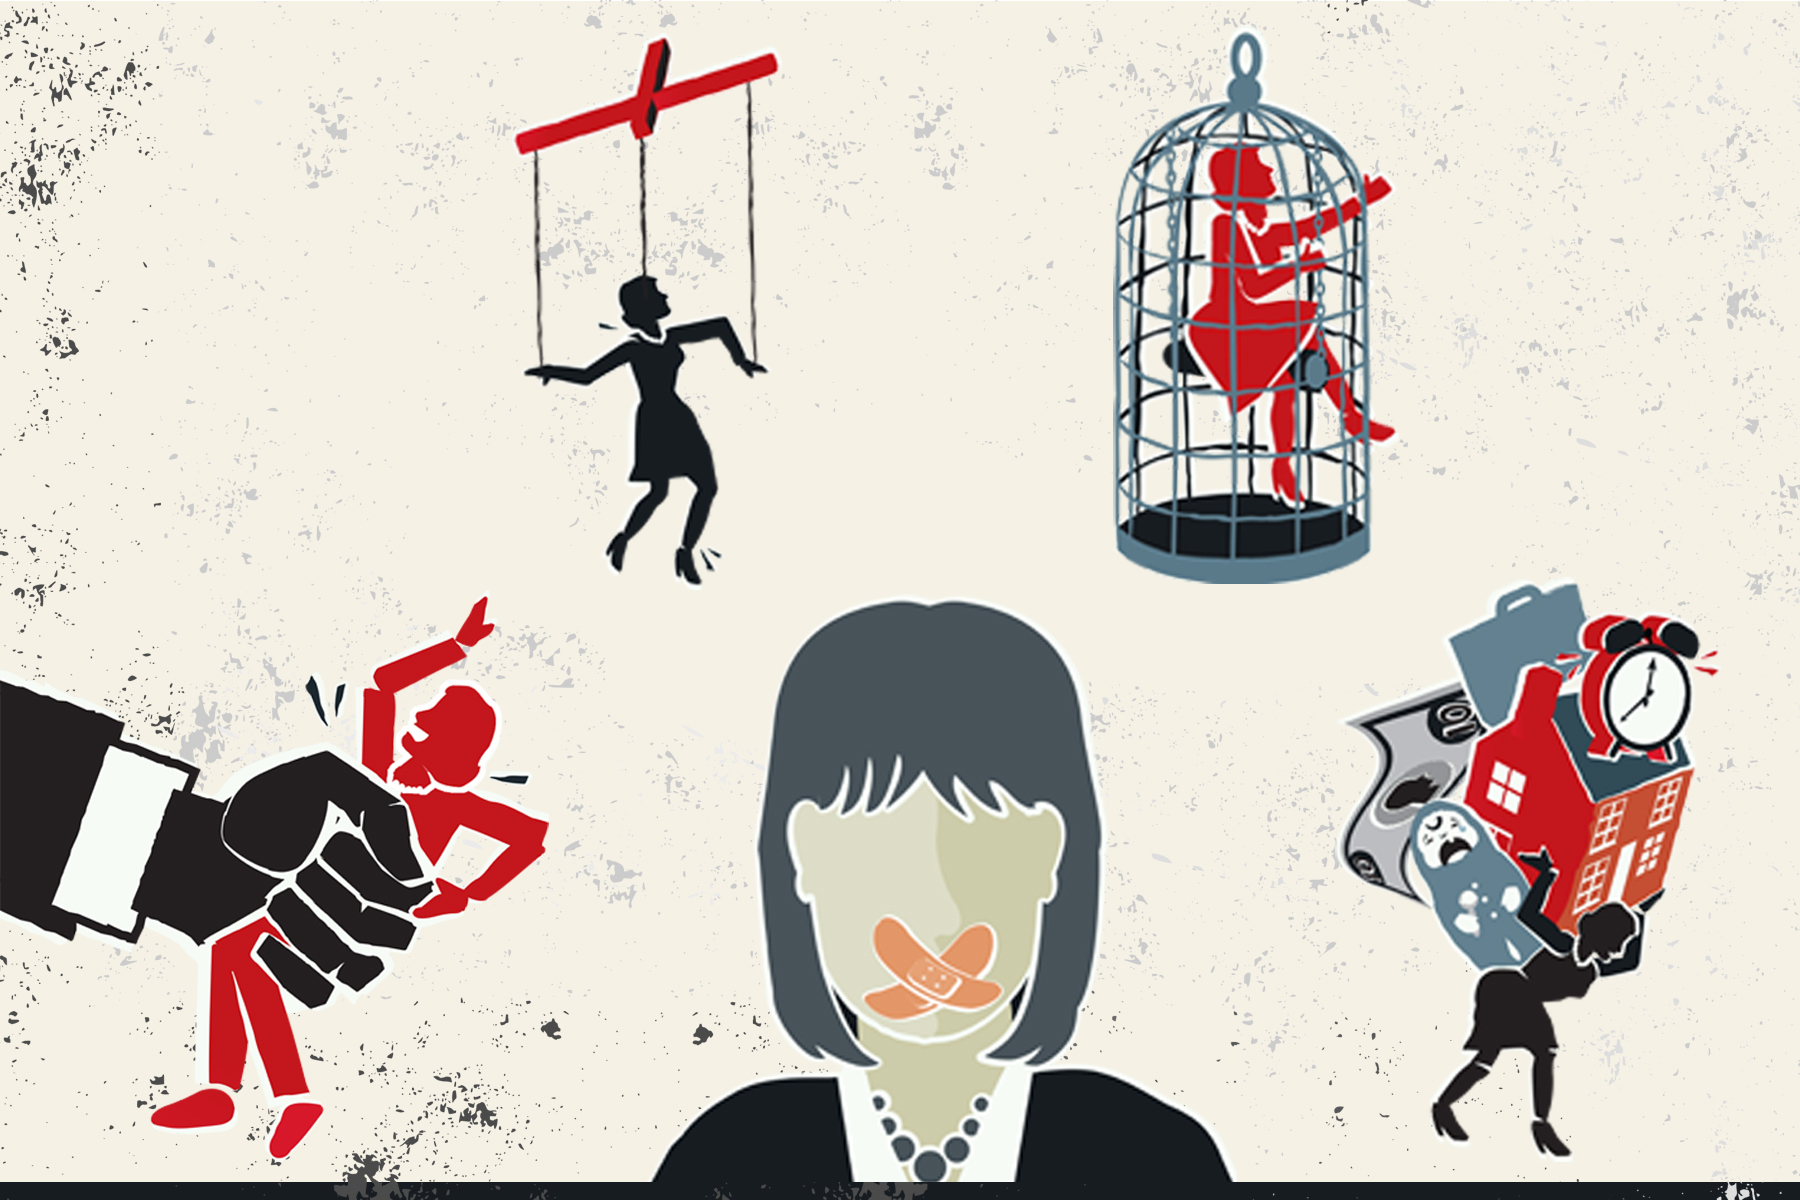 Icons representing different forms of abuse: A woman clasped by a giant hand, a woman strung up with puppet strings, a woman trapped in a cage, a woman carrying responsibilities on her back (money, childcare, time ,work), a woman gagged